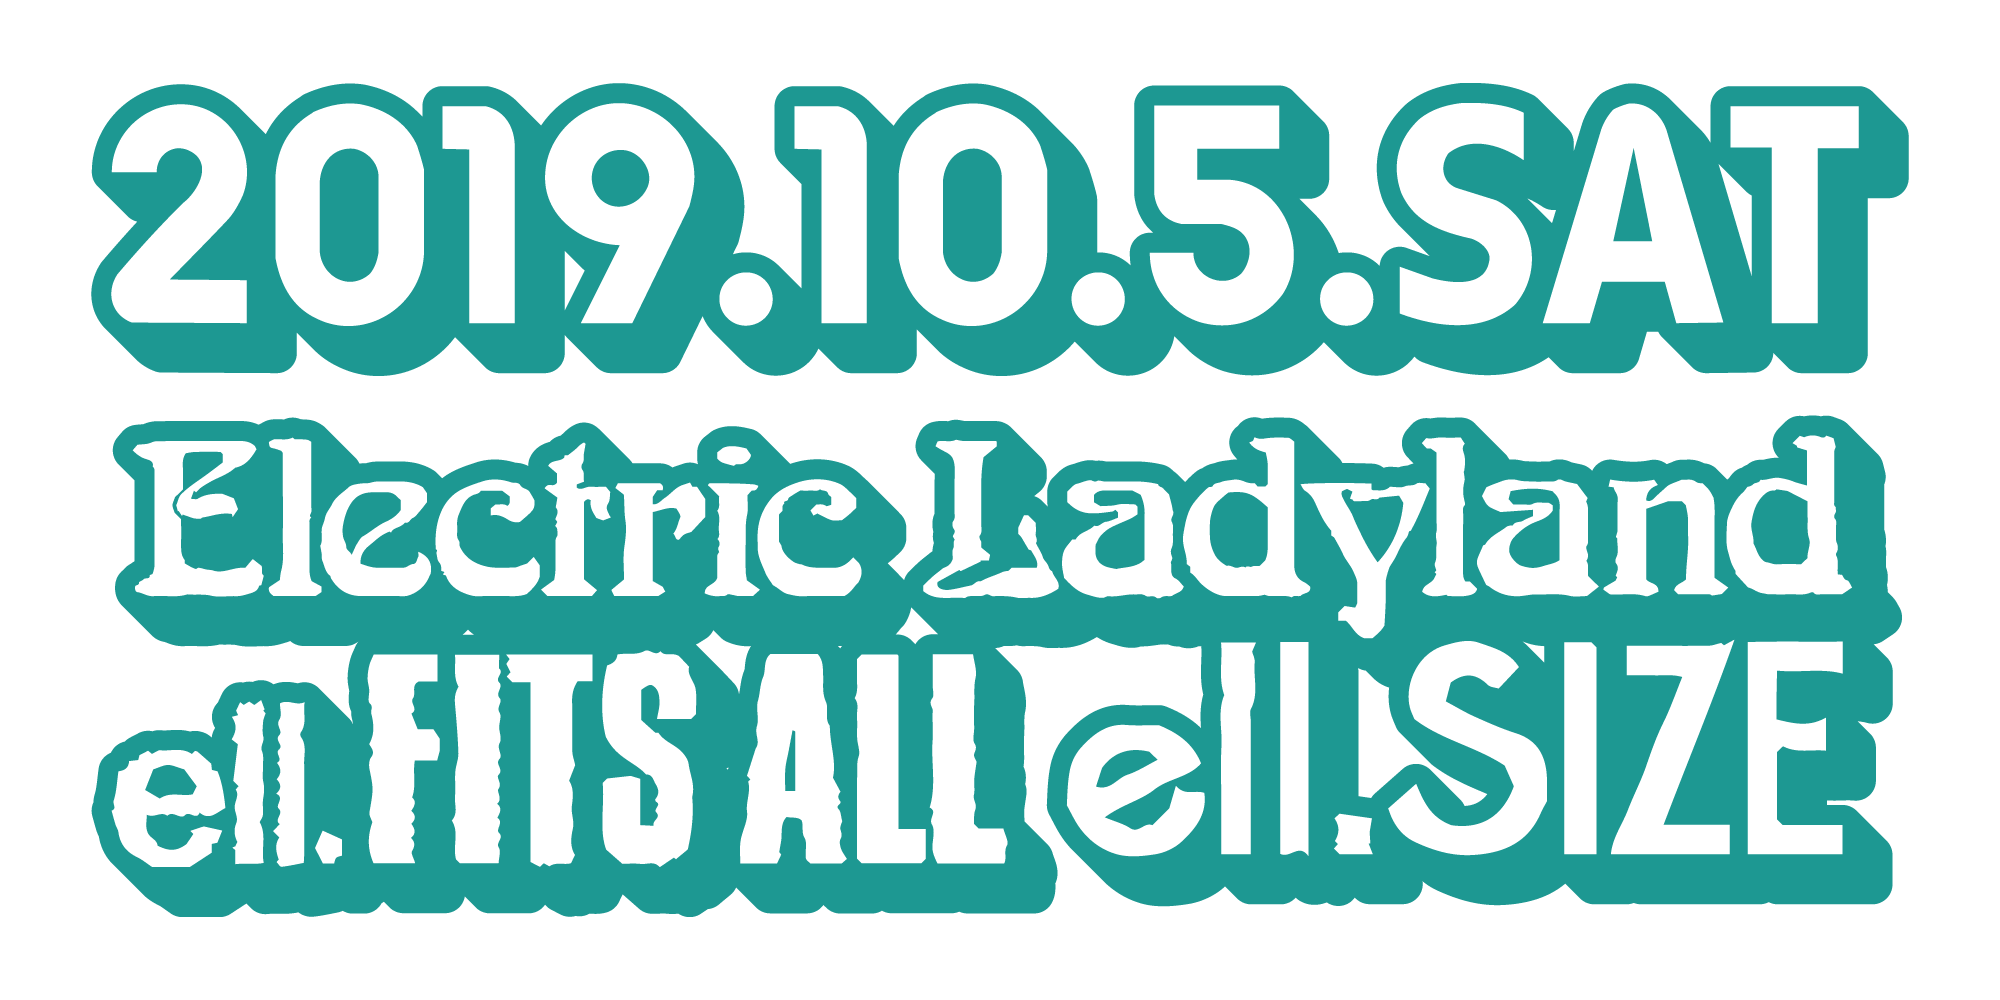 2019.10.5.sat at Electric Lady Land,ell.FITSALL,ell.SIZE